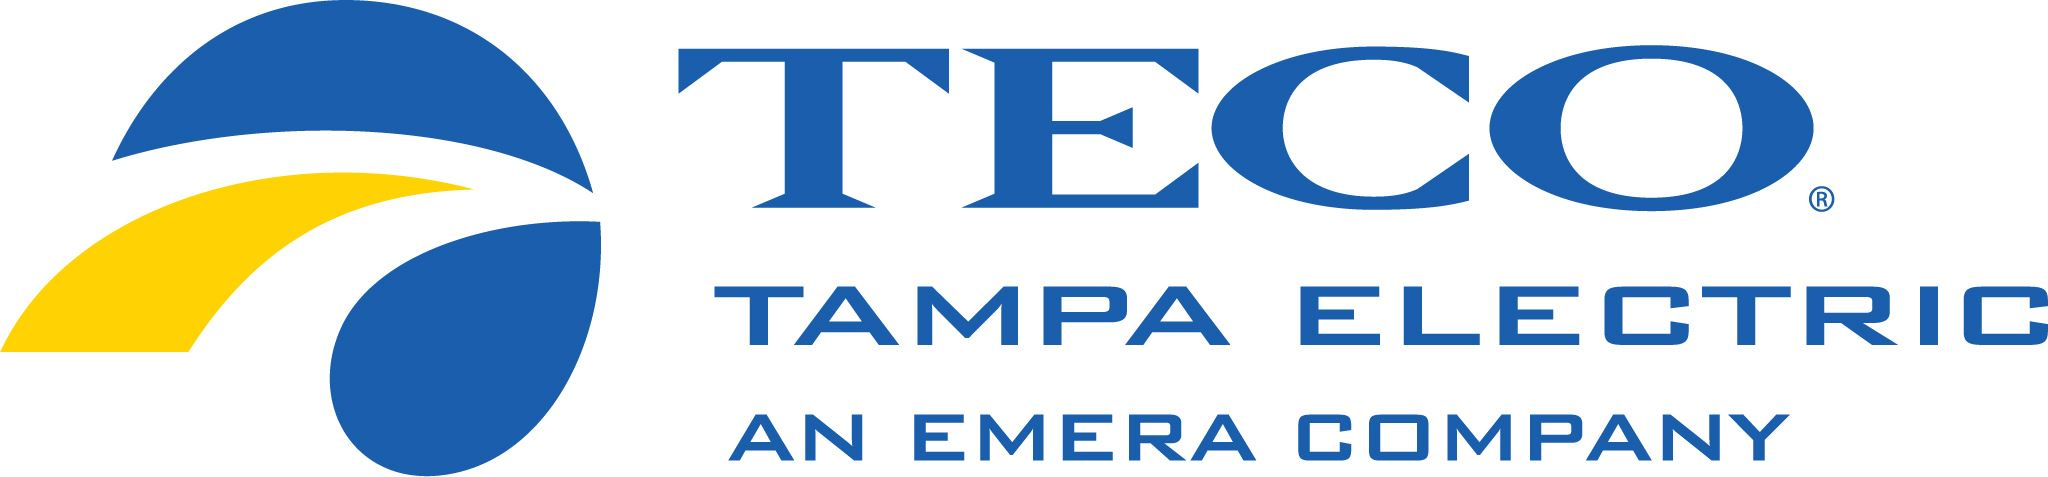 Tampa Electric Company logo Opens in new window